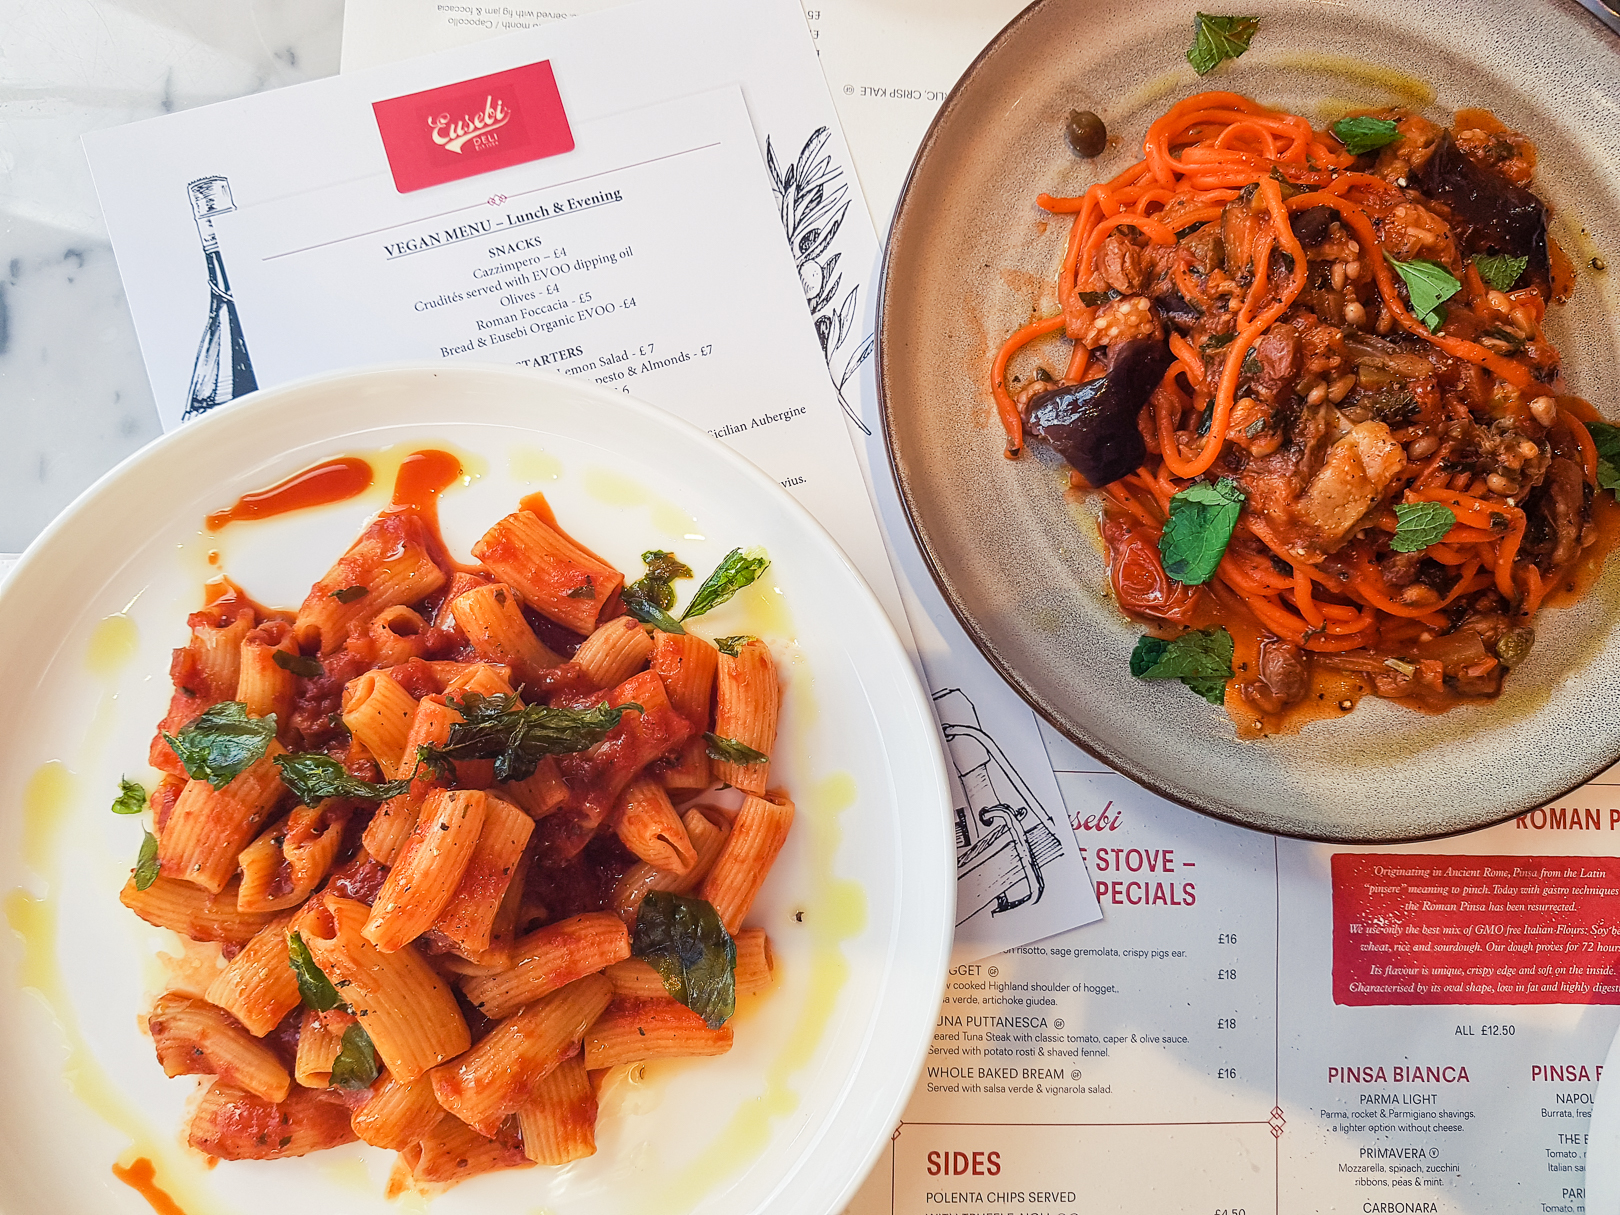 Vegan pasta dishes at Eusebi Deli in Glasgow.